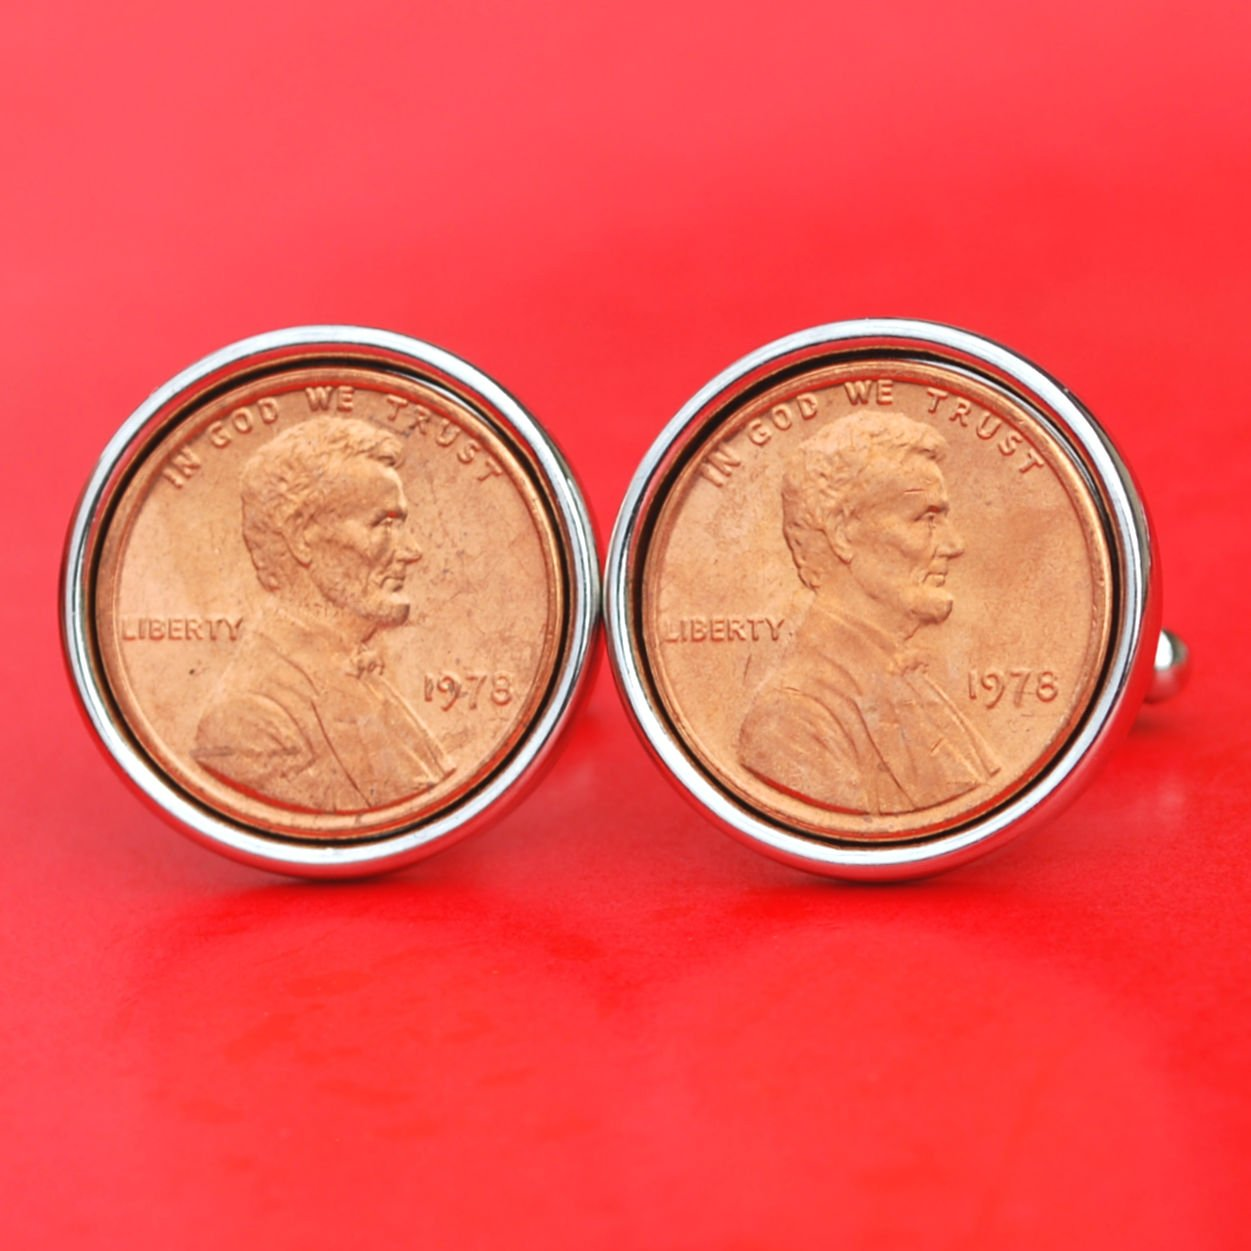 US 1978 Lincoln Small Cent BU Uncirculated Coin Silver Plated Cufflinks NEW - Lucky Penny